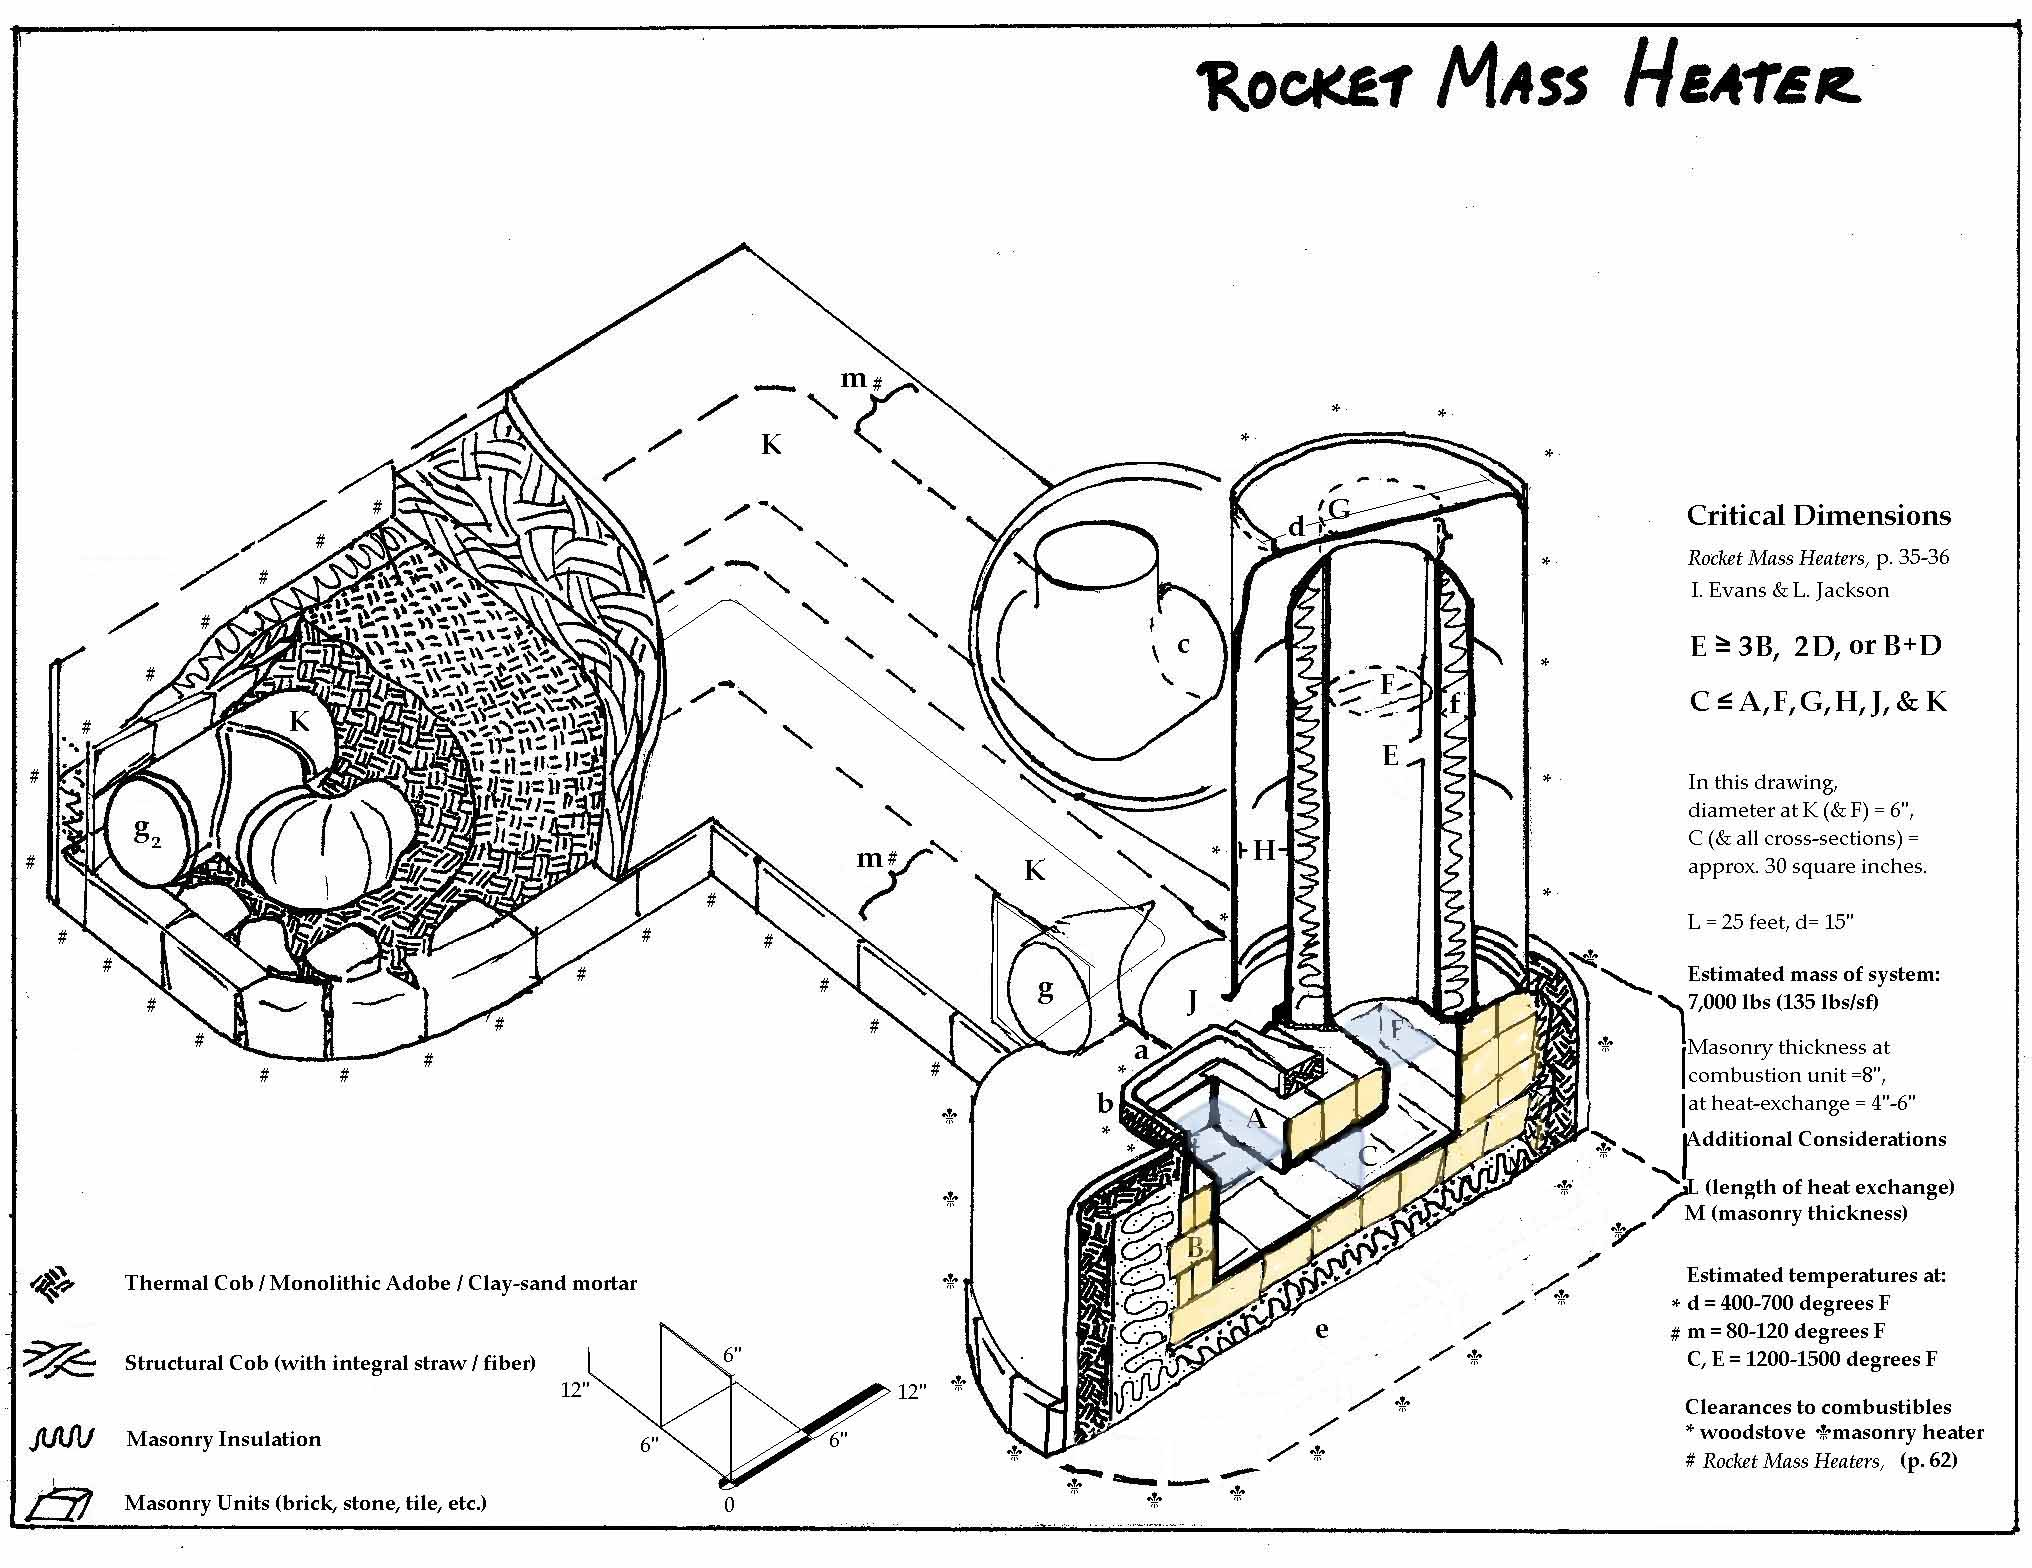 A castable burn chamber (rocket mass heater forum at permies)